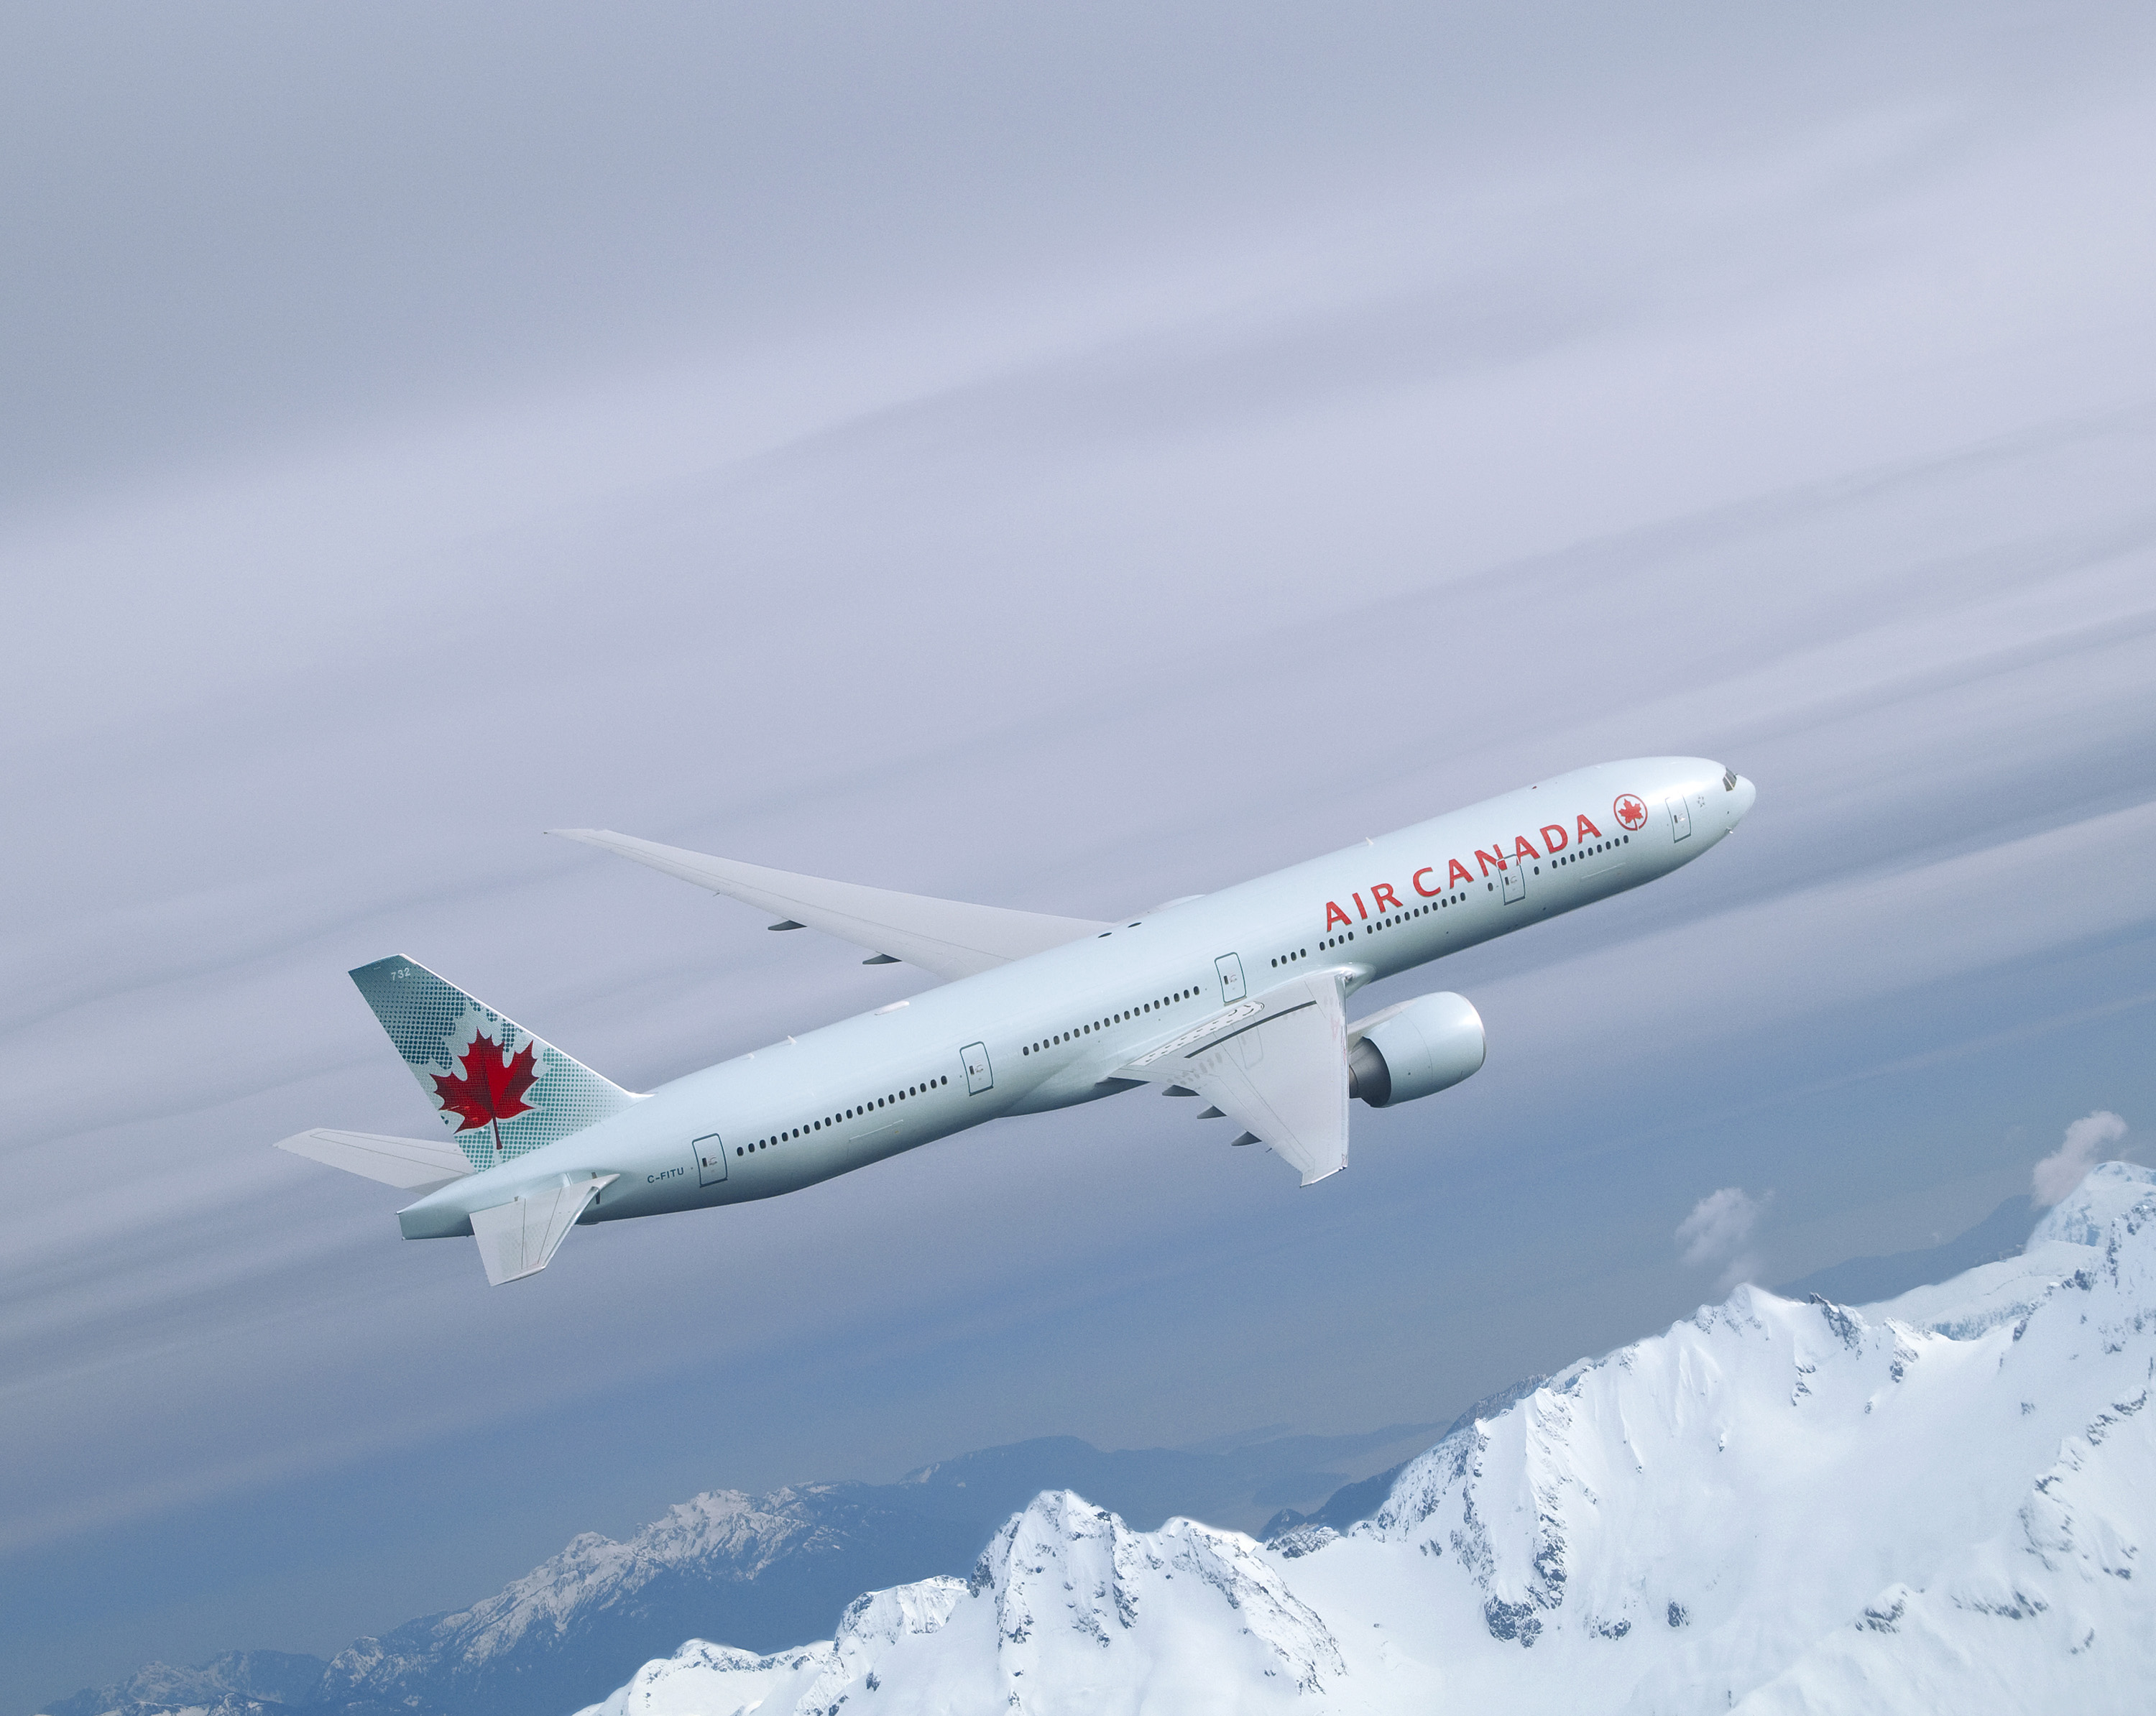 Frequent flyers take off with Altitude   SkyTALK Online